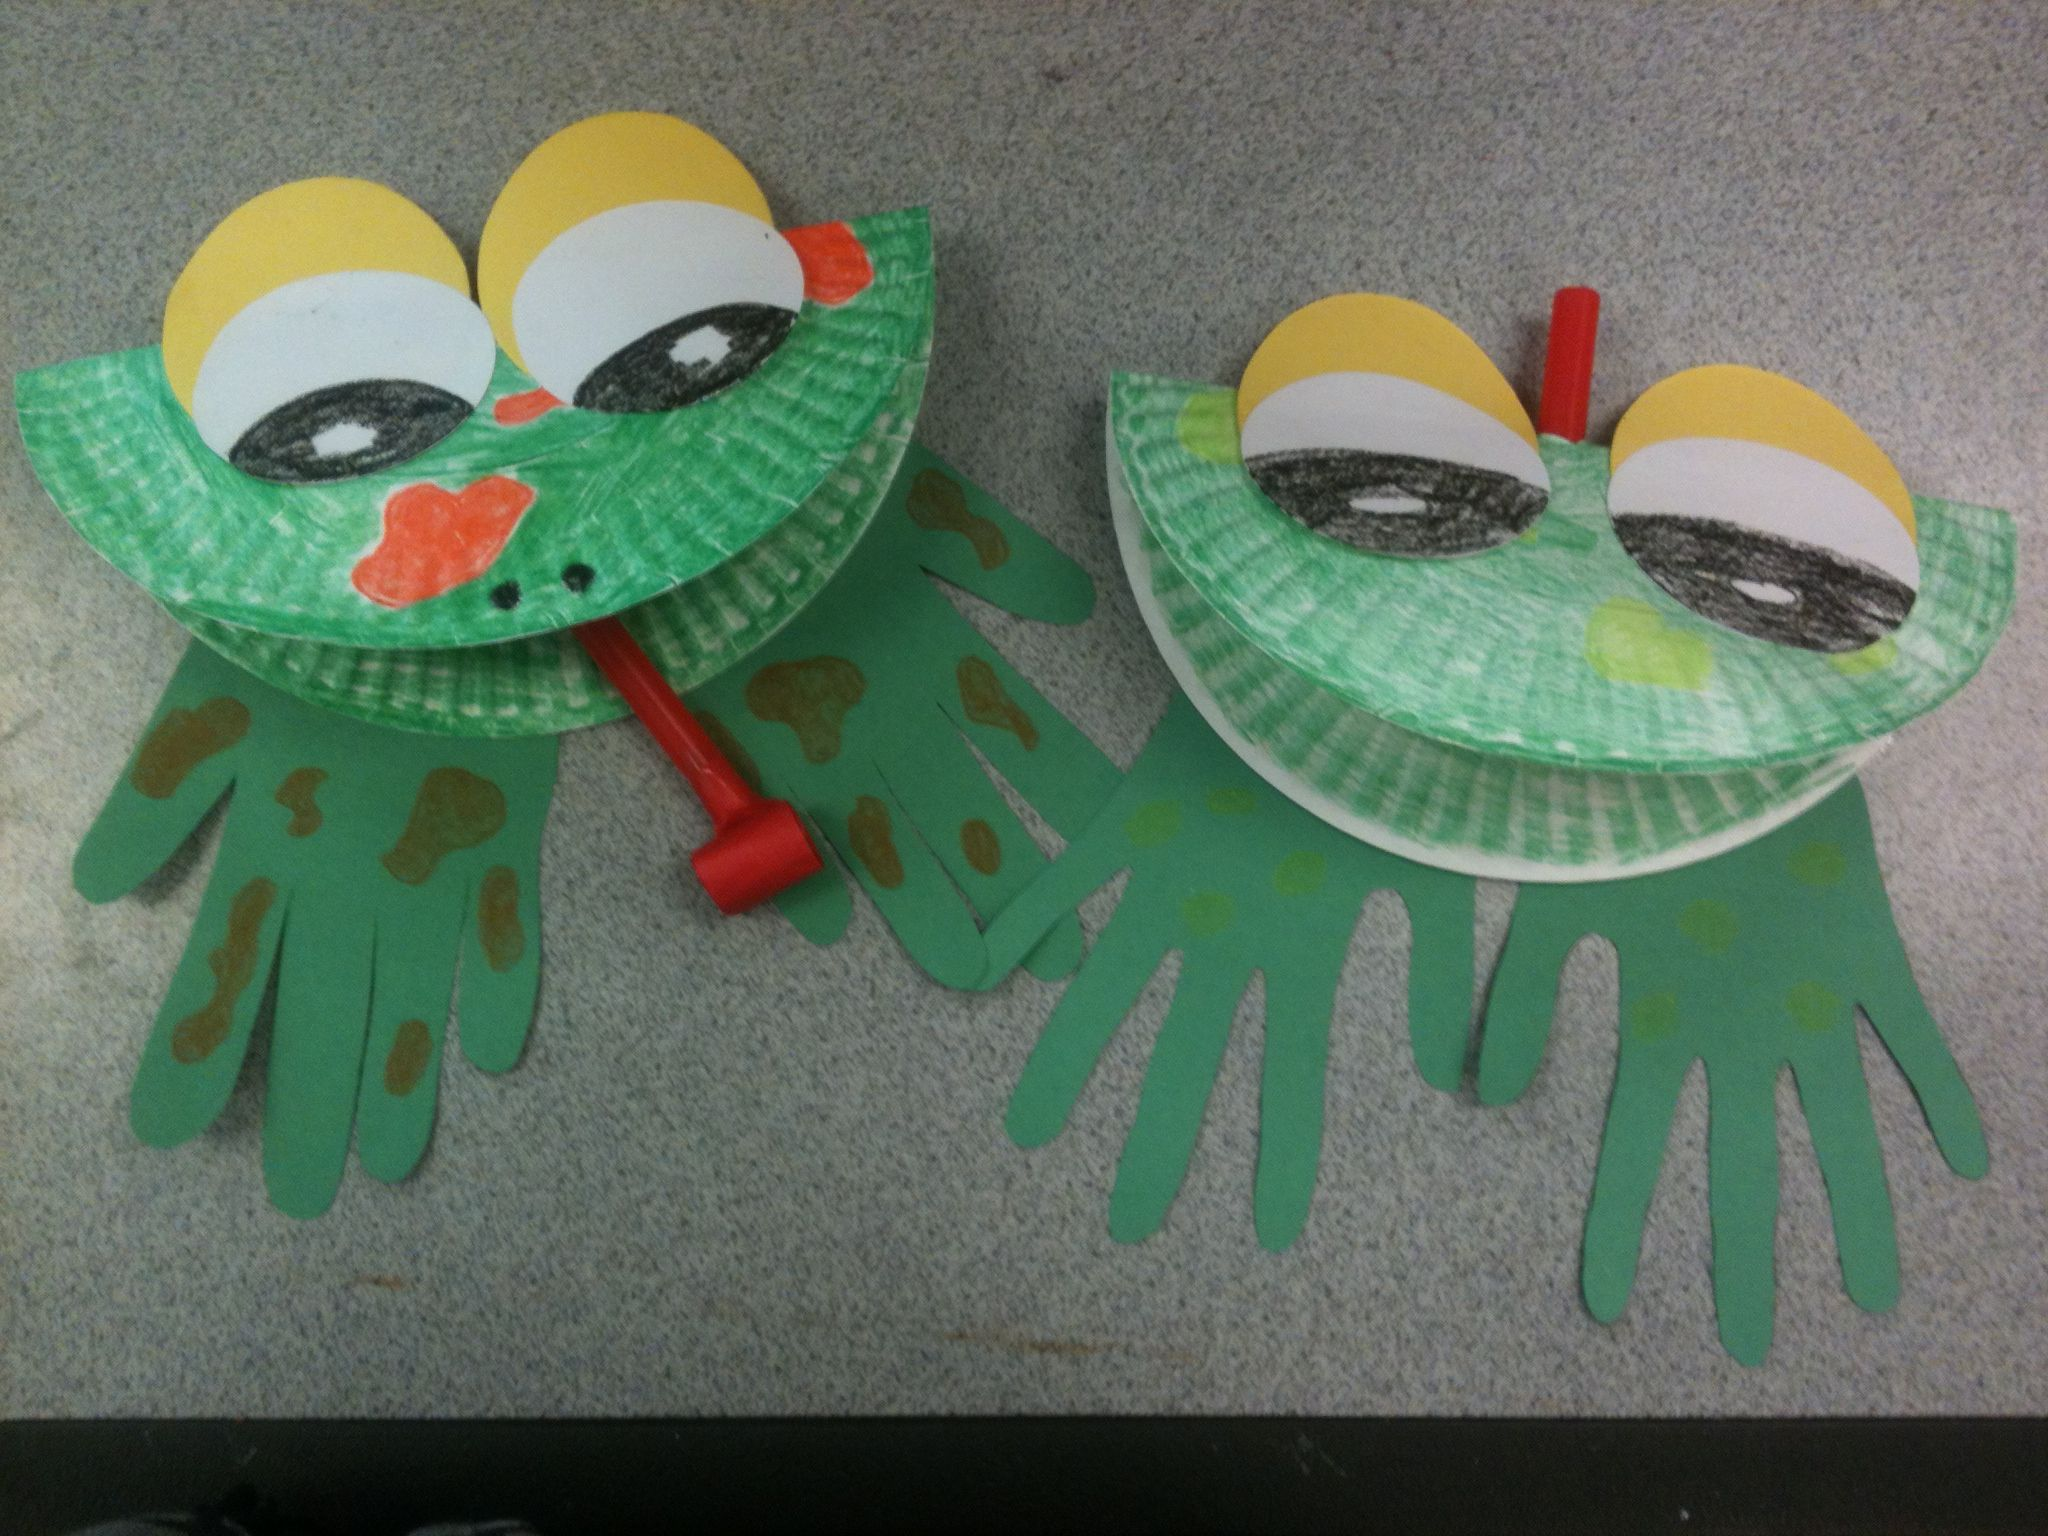 The 25 best frog crafts ideas on pinterest frog crafts for Frog crafts for preschoolers